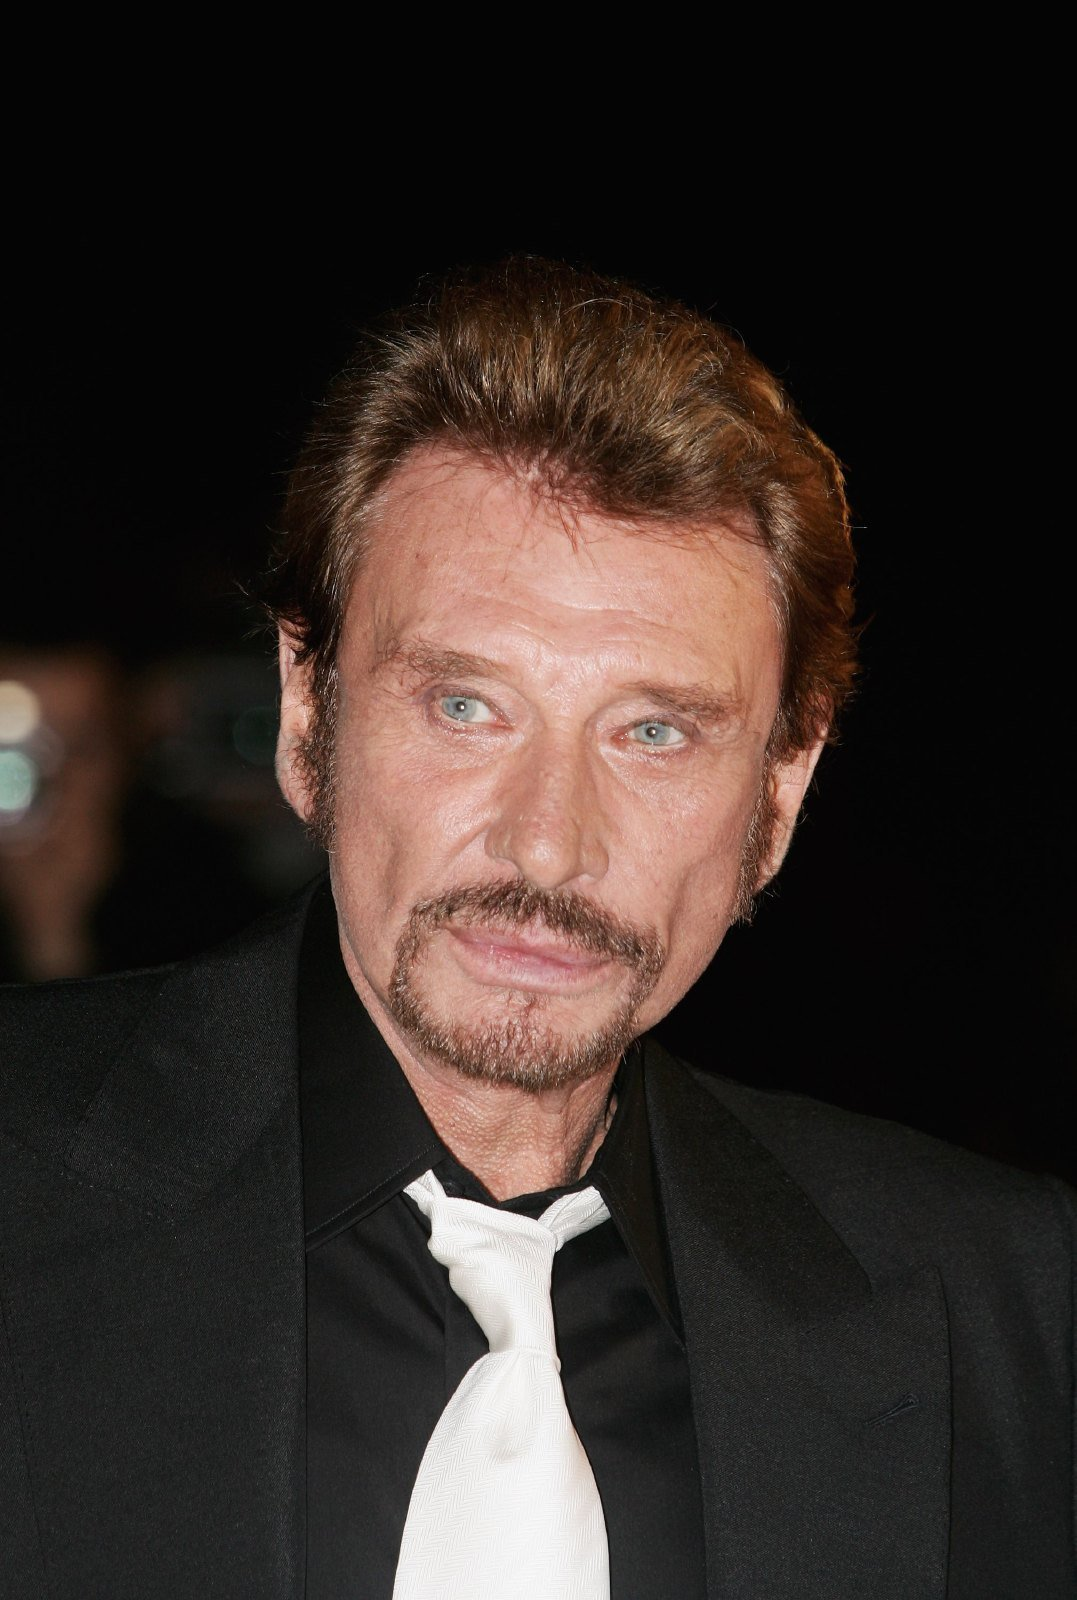 Johnny Hallyday au Virgin Megastore Champs-Elysées le 27 mars 2011 à Paris, France. | Photo : Getty Images